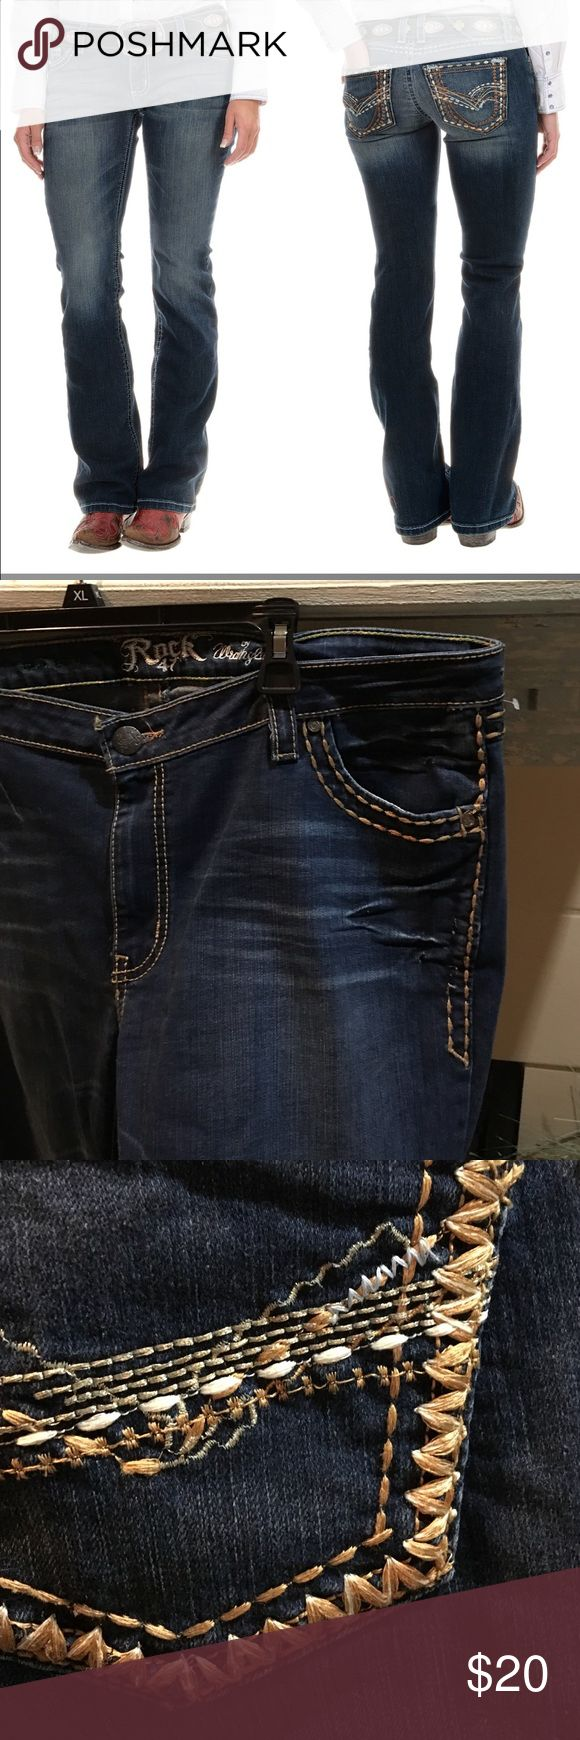 """Rock 47 ultra low rise jeans New with tags. Rock 47 by Wrangler. Ultra Low rise. Washed denim. very comfortable, touch of spandex to ease the fit and plenty of blingy details to jazz up cowgirl persona. Fabric is a lightly stretching cotton denim with stretch polyester. Five-pocket styling. Bootcut leg. Leg opening: 18"""". Waistband: 1"""". Belt loops: 2"""" Fabric: 92% cotton, 6% polyester, 2% spandex. When measured: 38"""" waist. 34"""" inseam. But Tag reads 34x32. Size guide online states equivalent to…"""